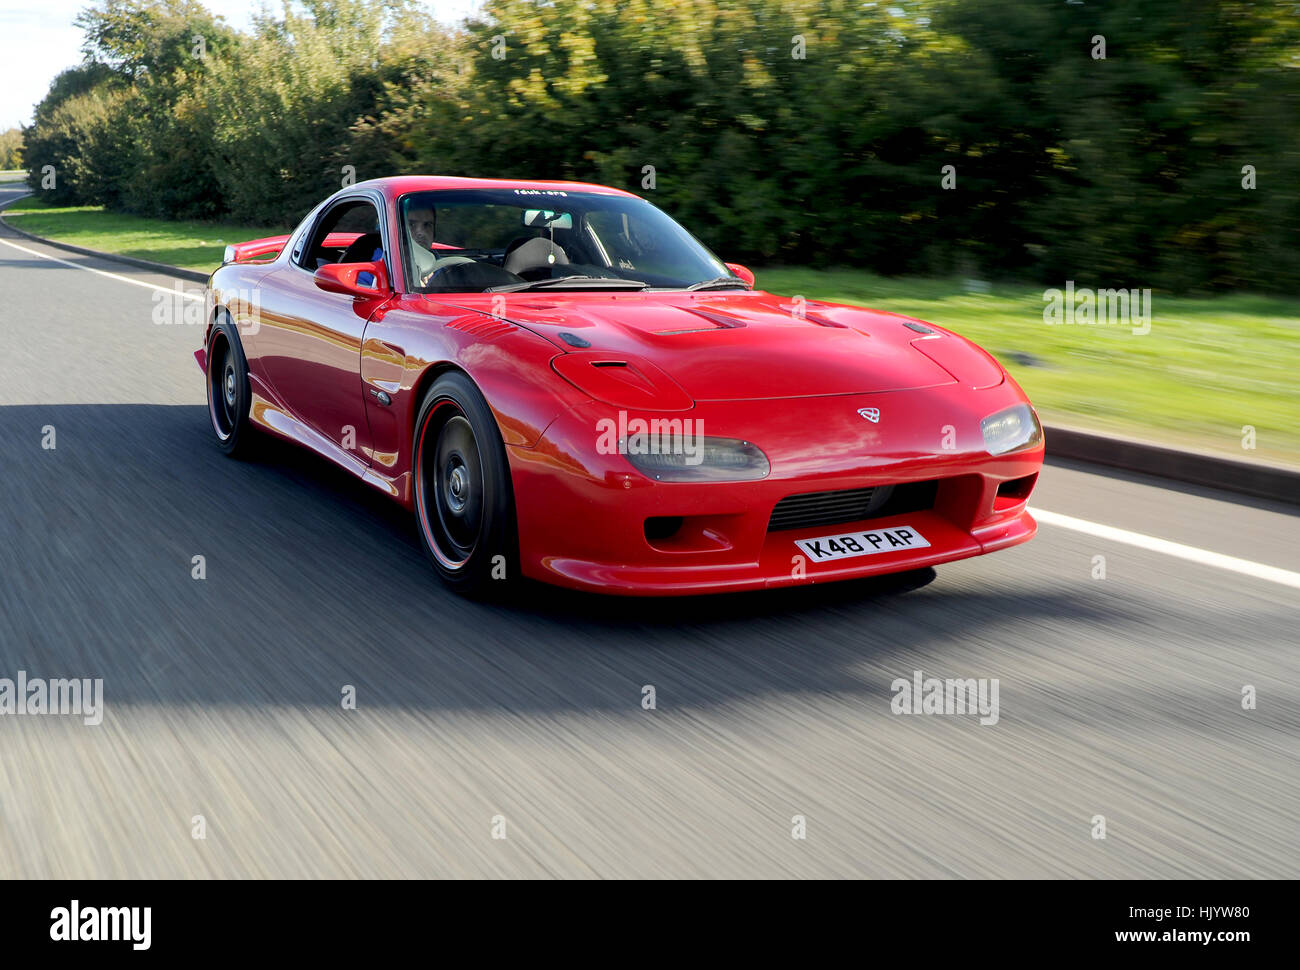 1992 Mazda Rx7 Engine Modified And Tuned Japanese Sports Car Fitted With A Wankel Rotary